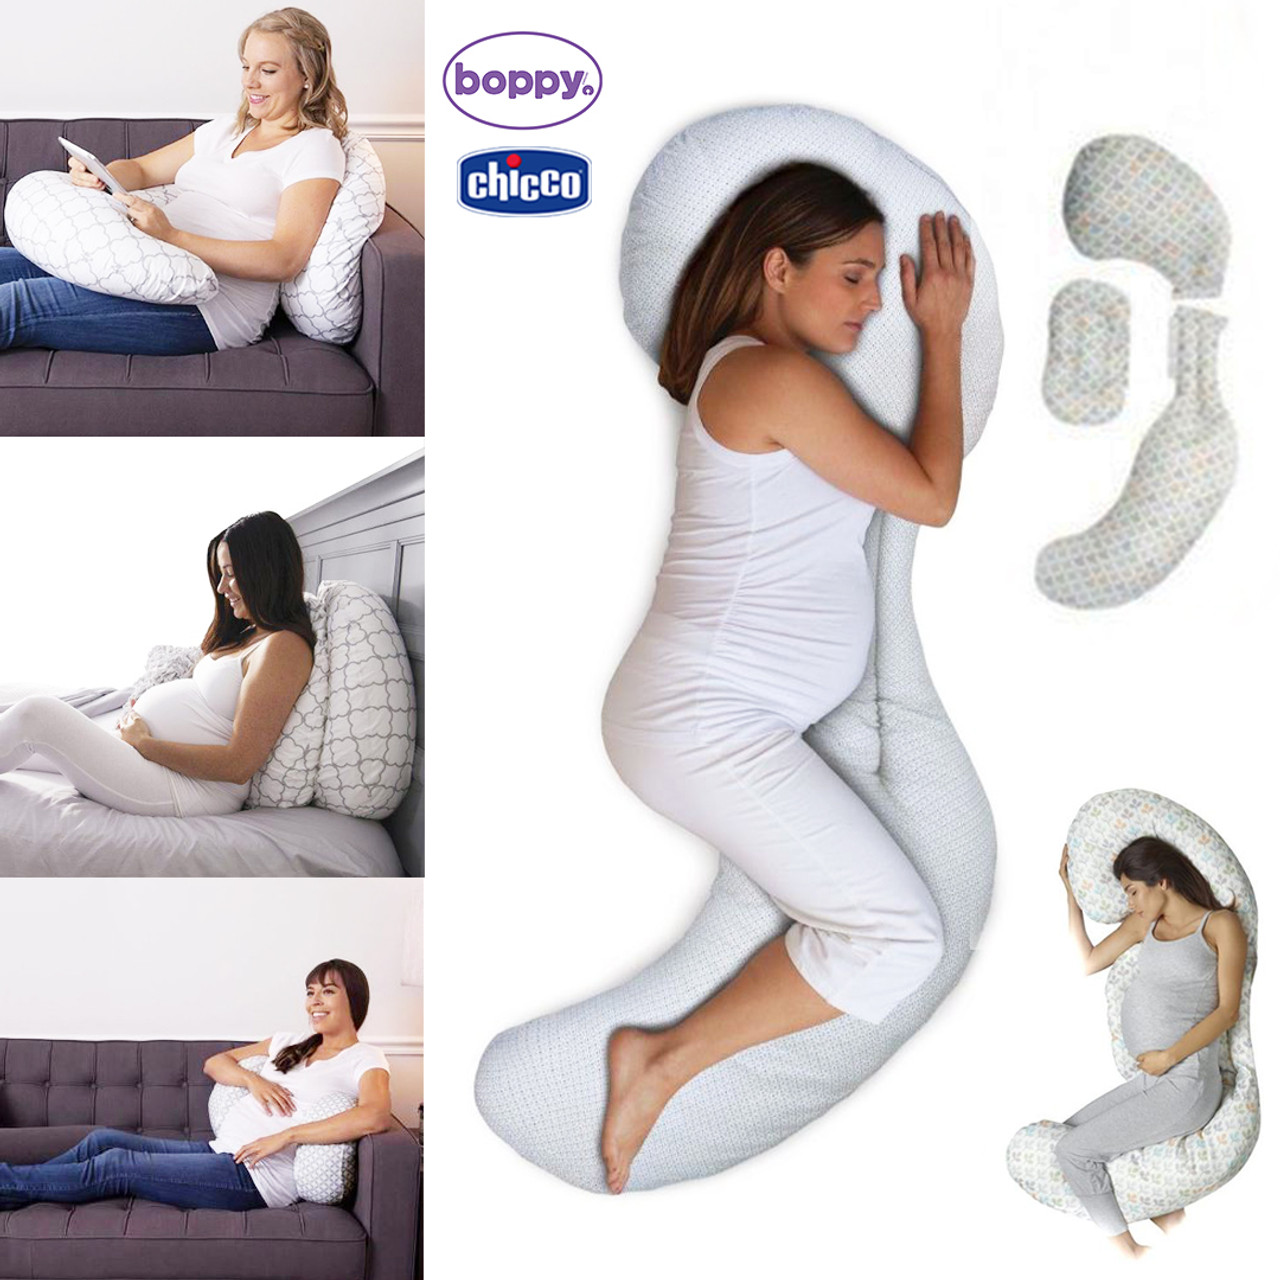 Boppy Total Body Pillow Glacier Chicco Wherever There S A Baby